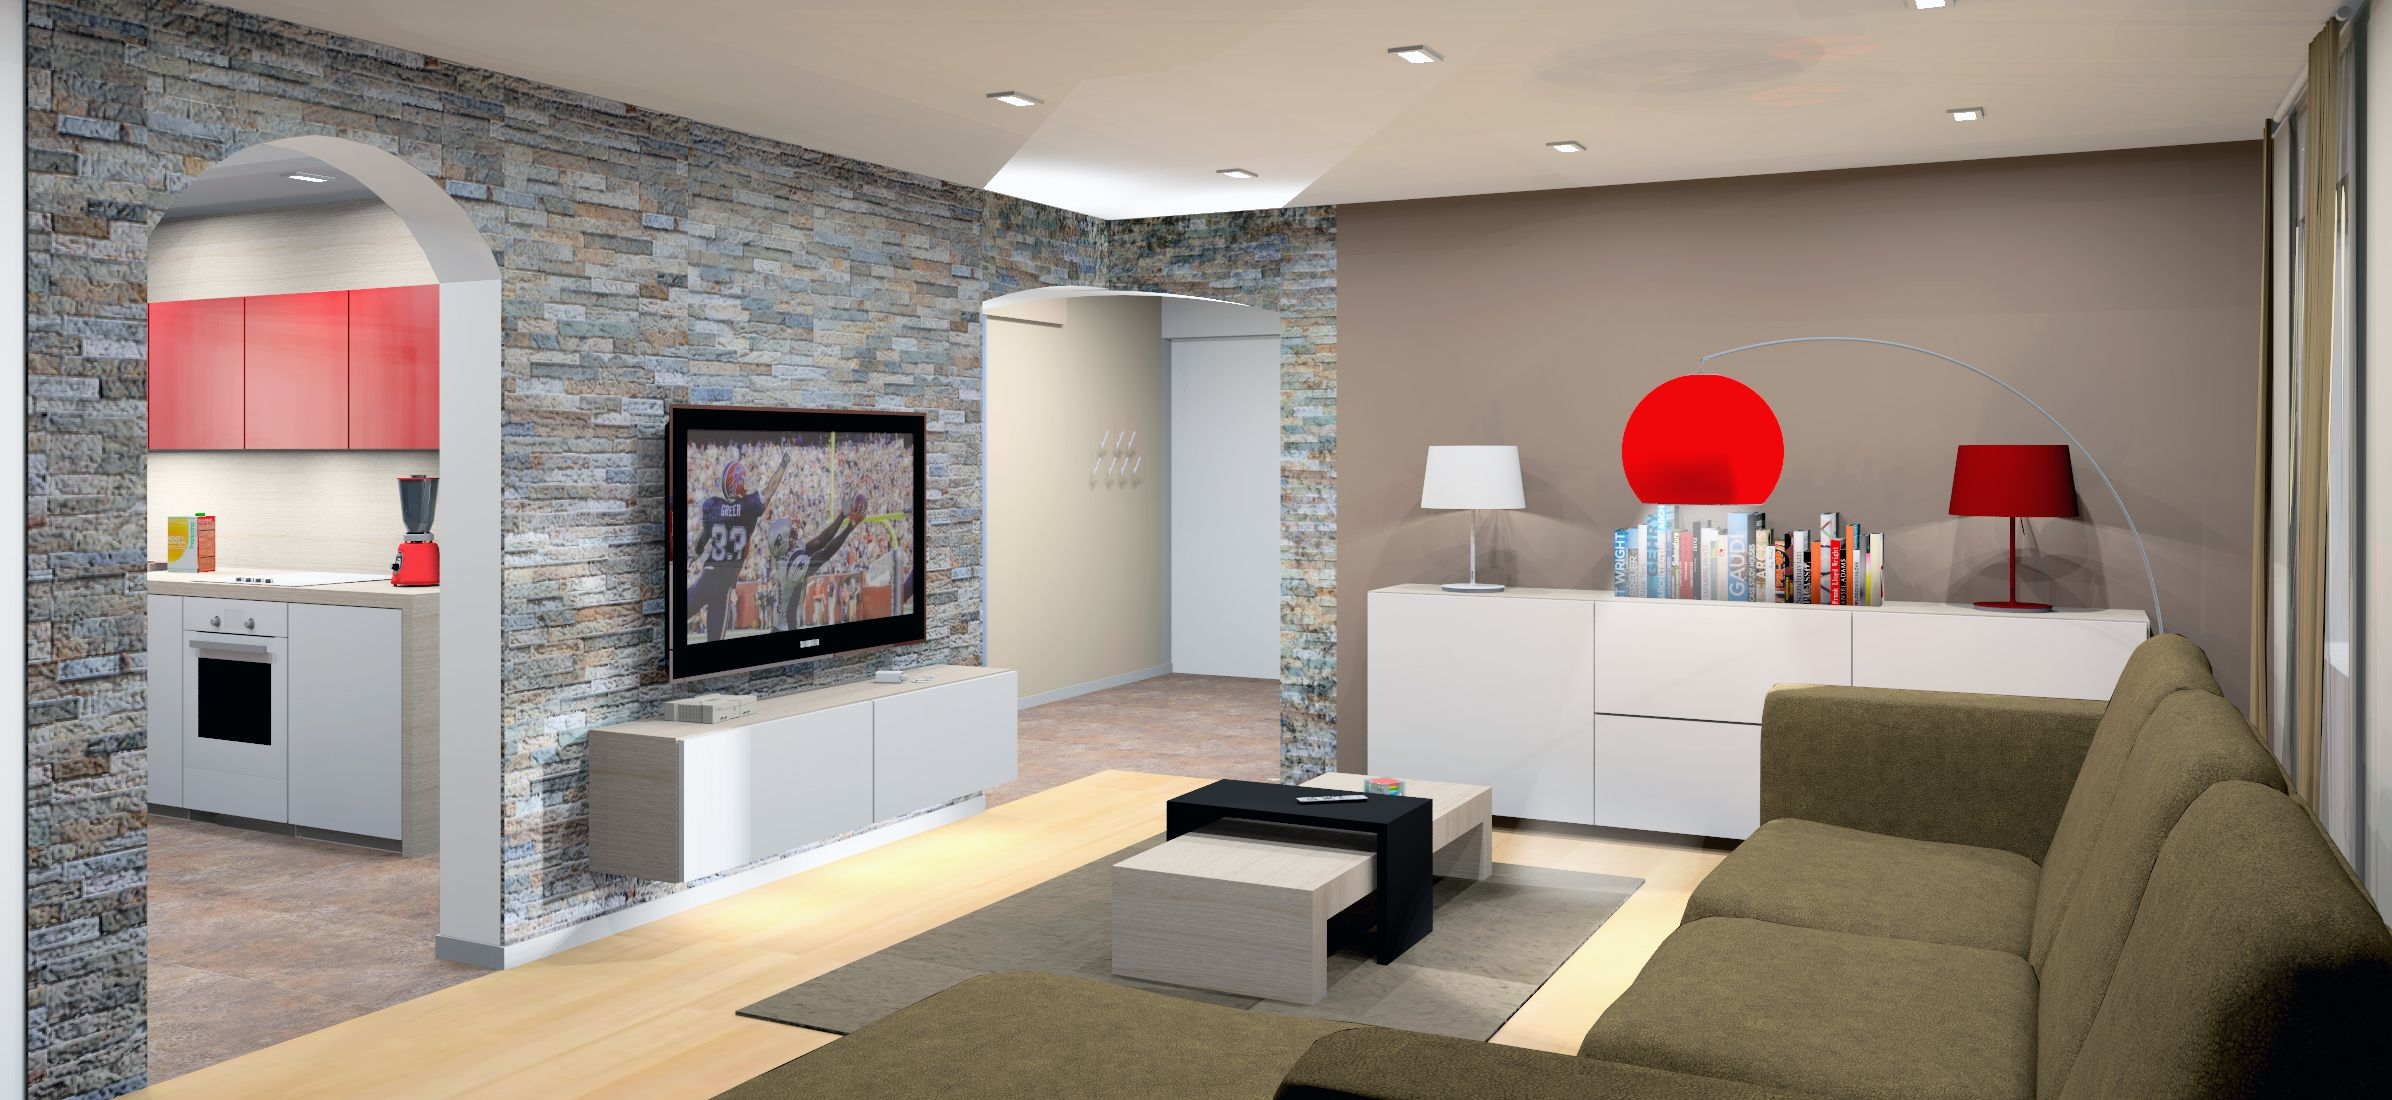 Living room with kitchen: project, design. Interior of kitchen combined with living room 99